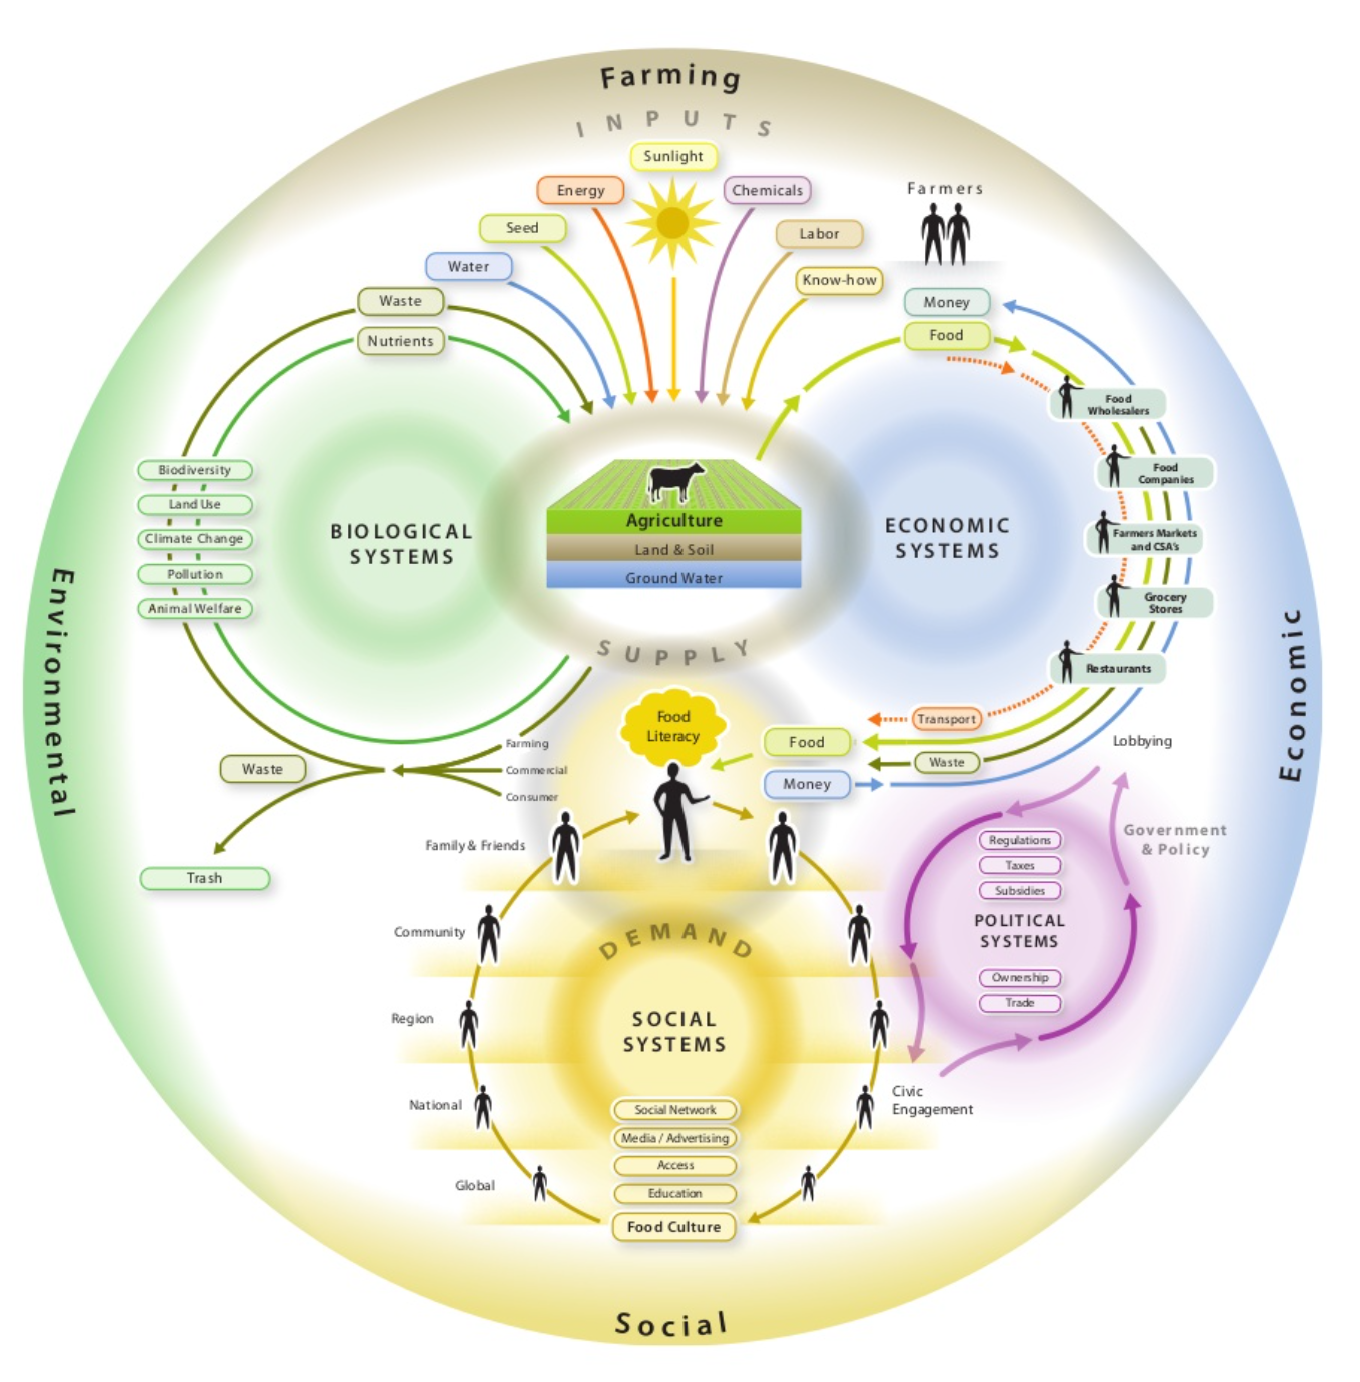 Figure 5: A simplified but holistic food system diagram.